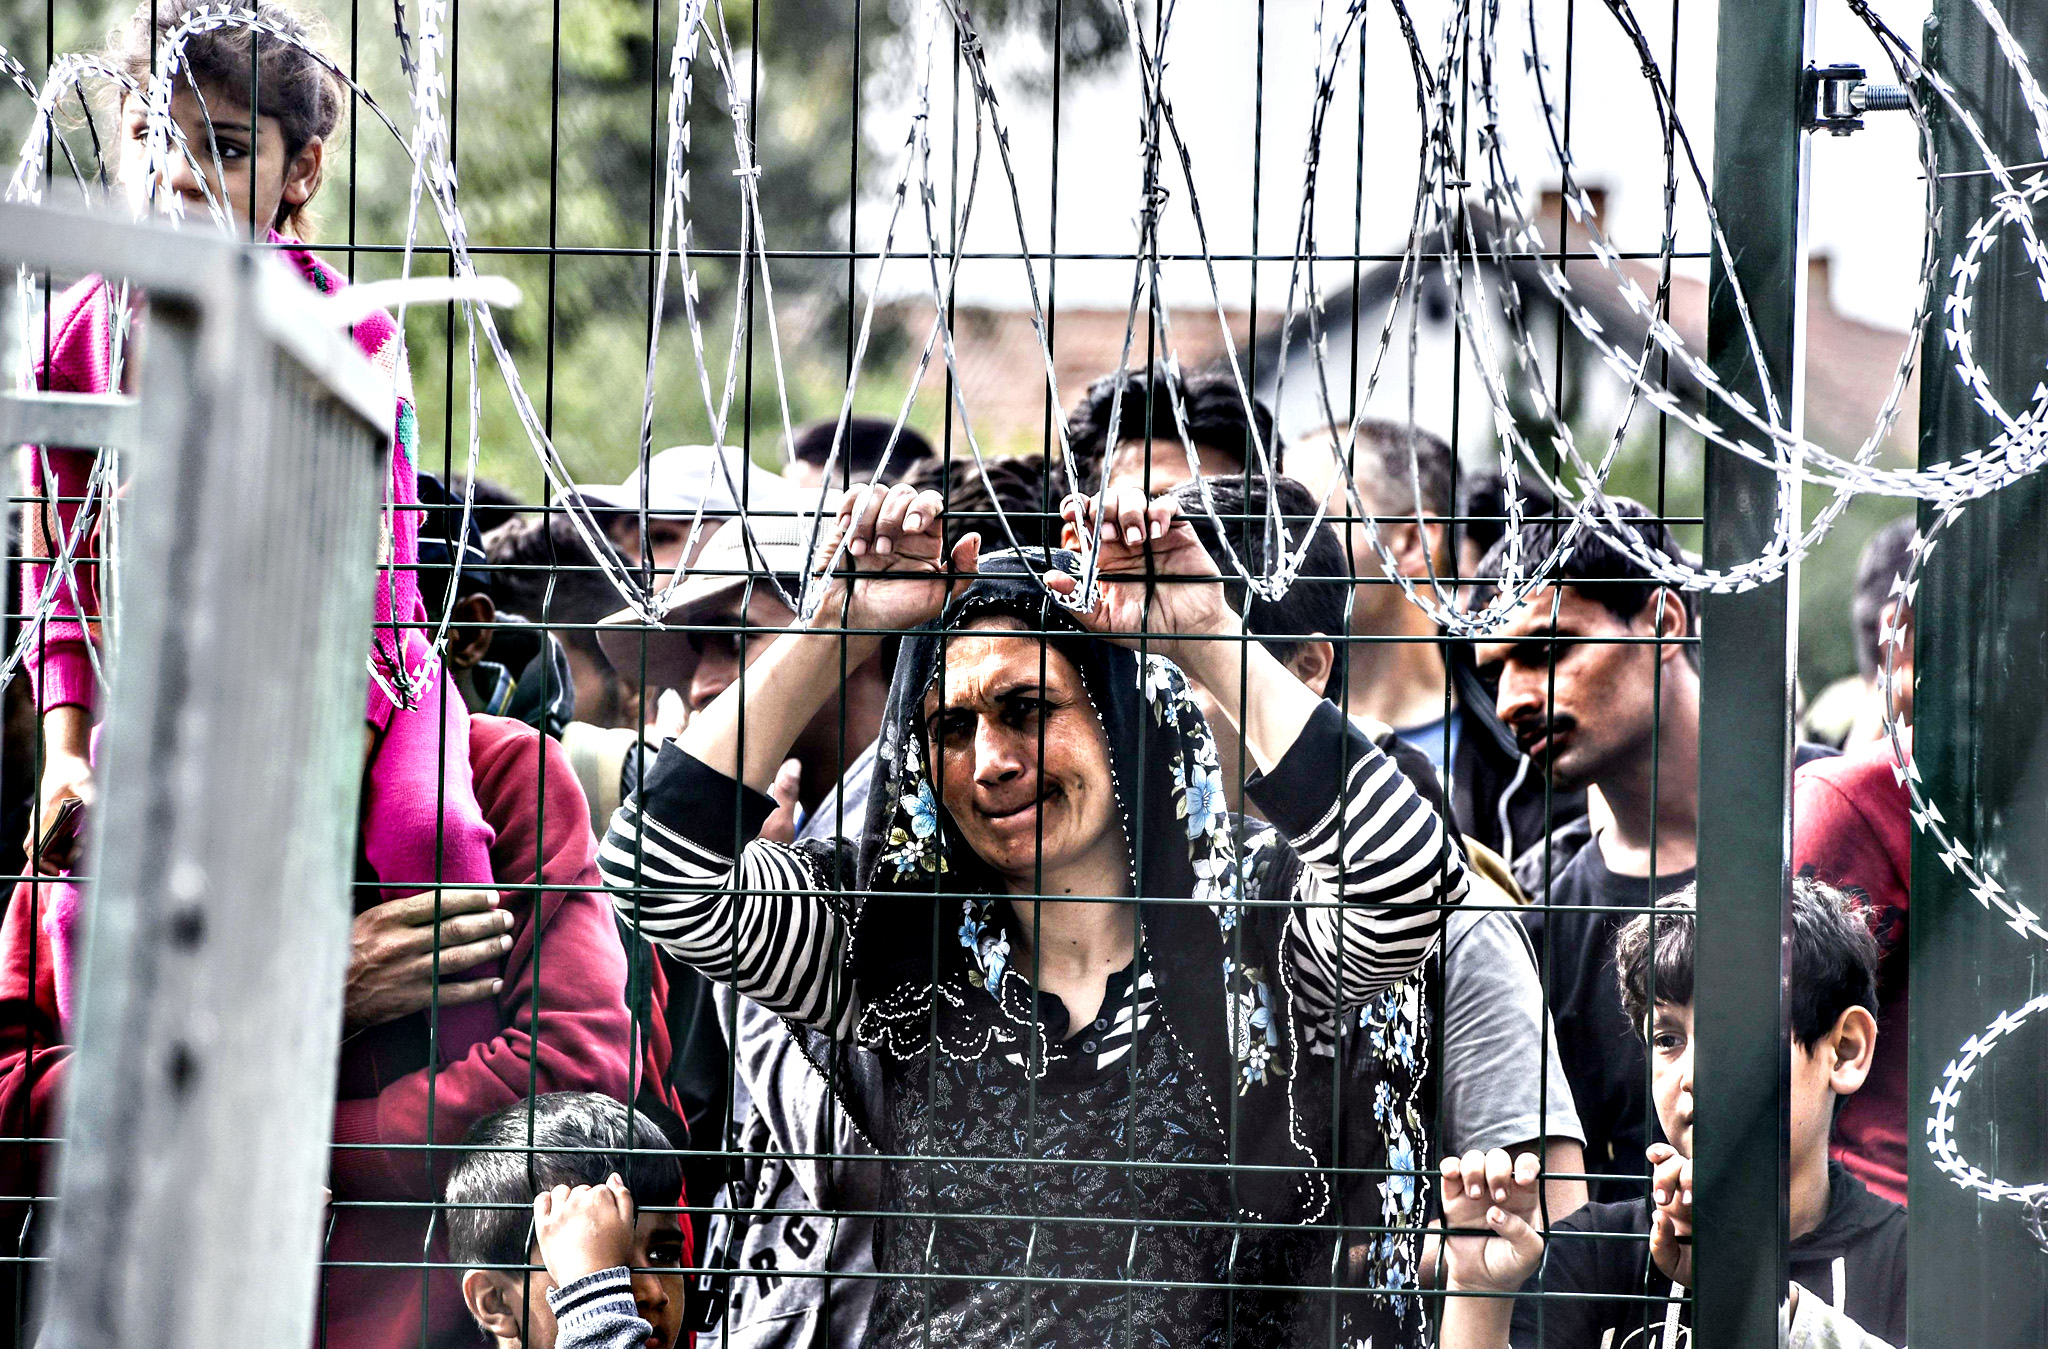 Hungarian border police stand guard opposite refugees standing behind a fence at the Hungarian border with Serbia near the town of Horgos on September 16, 2015. Europe's 20-year passport-free Schengen zone appeared to be a risk of crumbling with Germany boosting border controls on parts of its frontier with France as migrants desperate to find a way around Hungary's border fence began crossing into Croatia. With a string of EU countries tightened frontier controls in the face of the unprecedented human influx, the cherished principle of free movement across borders -- a pillar of the European project -- seemed in grave jeopardy